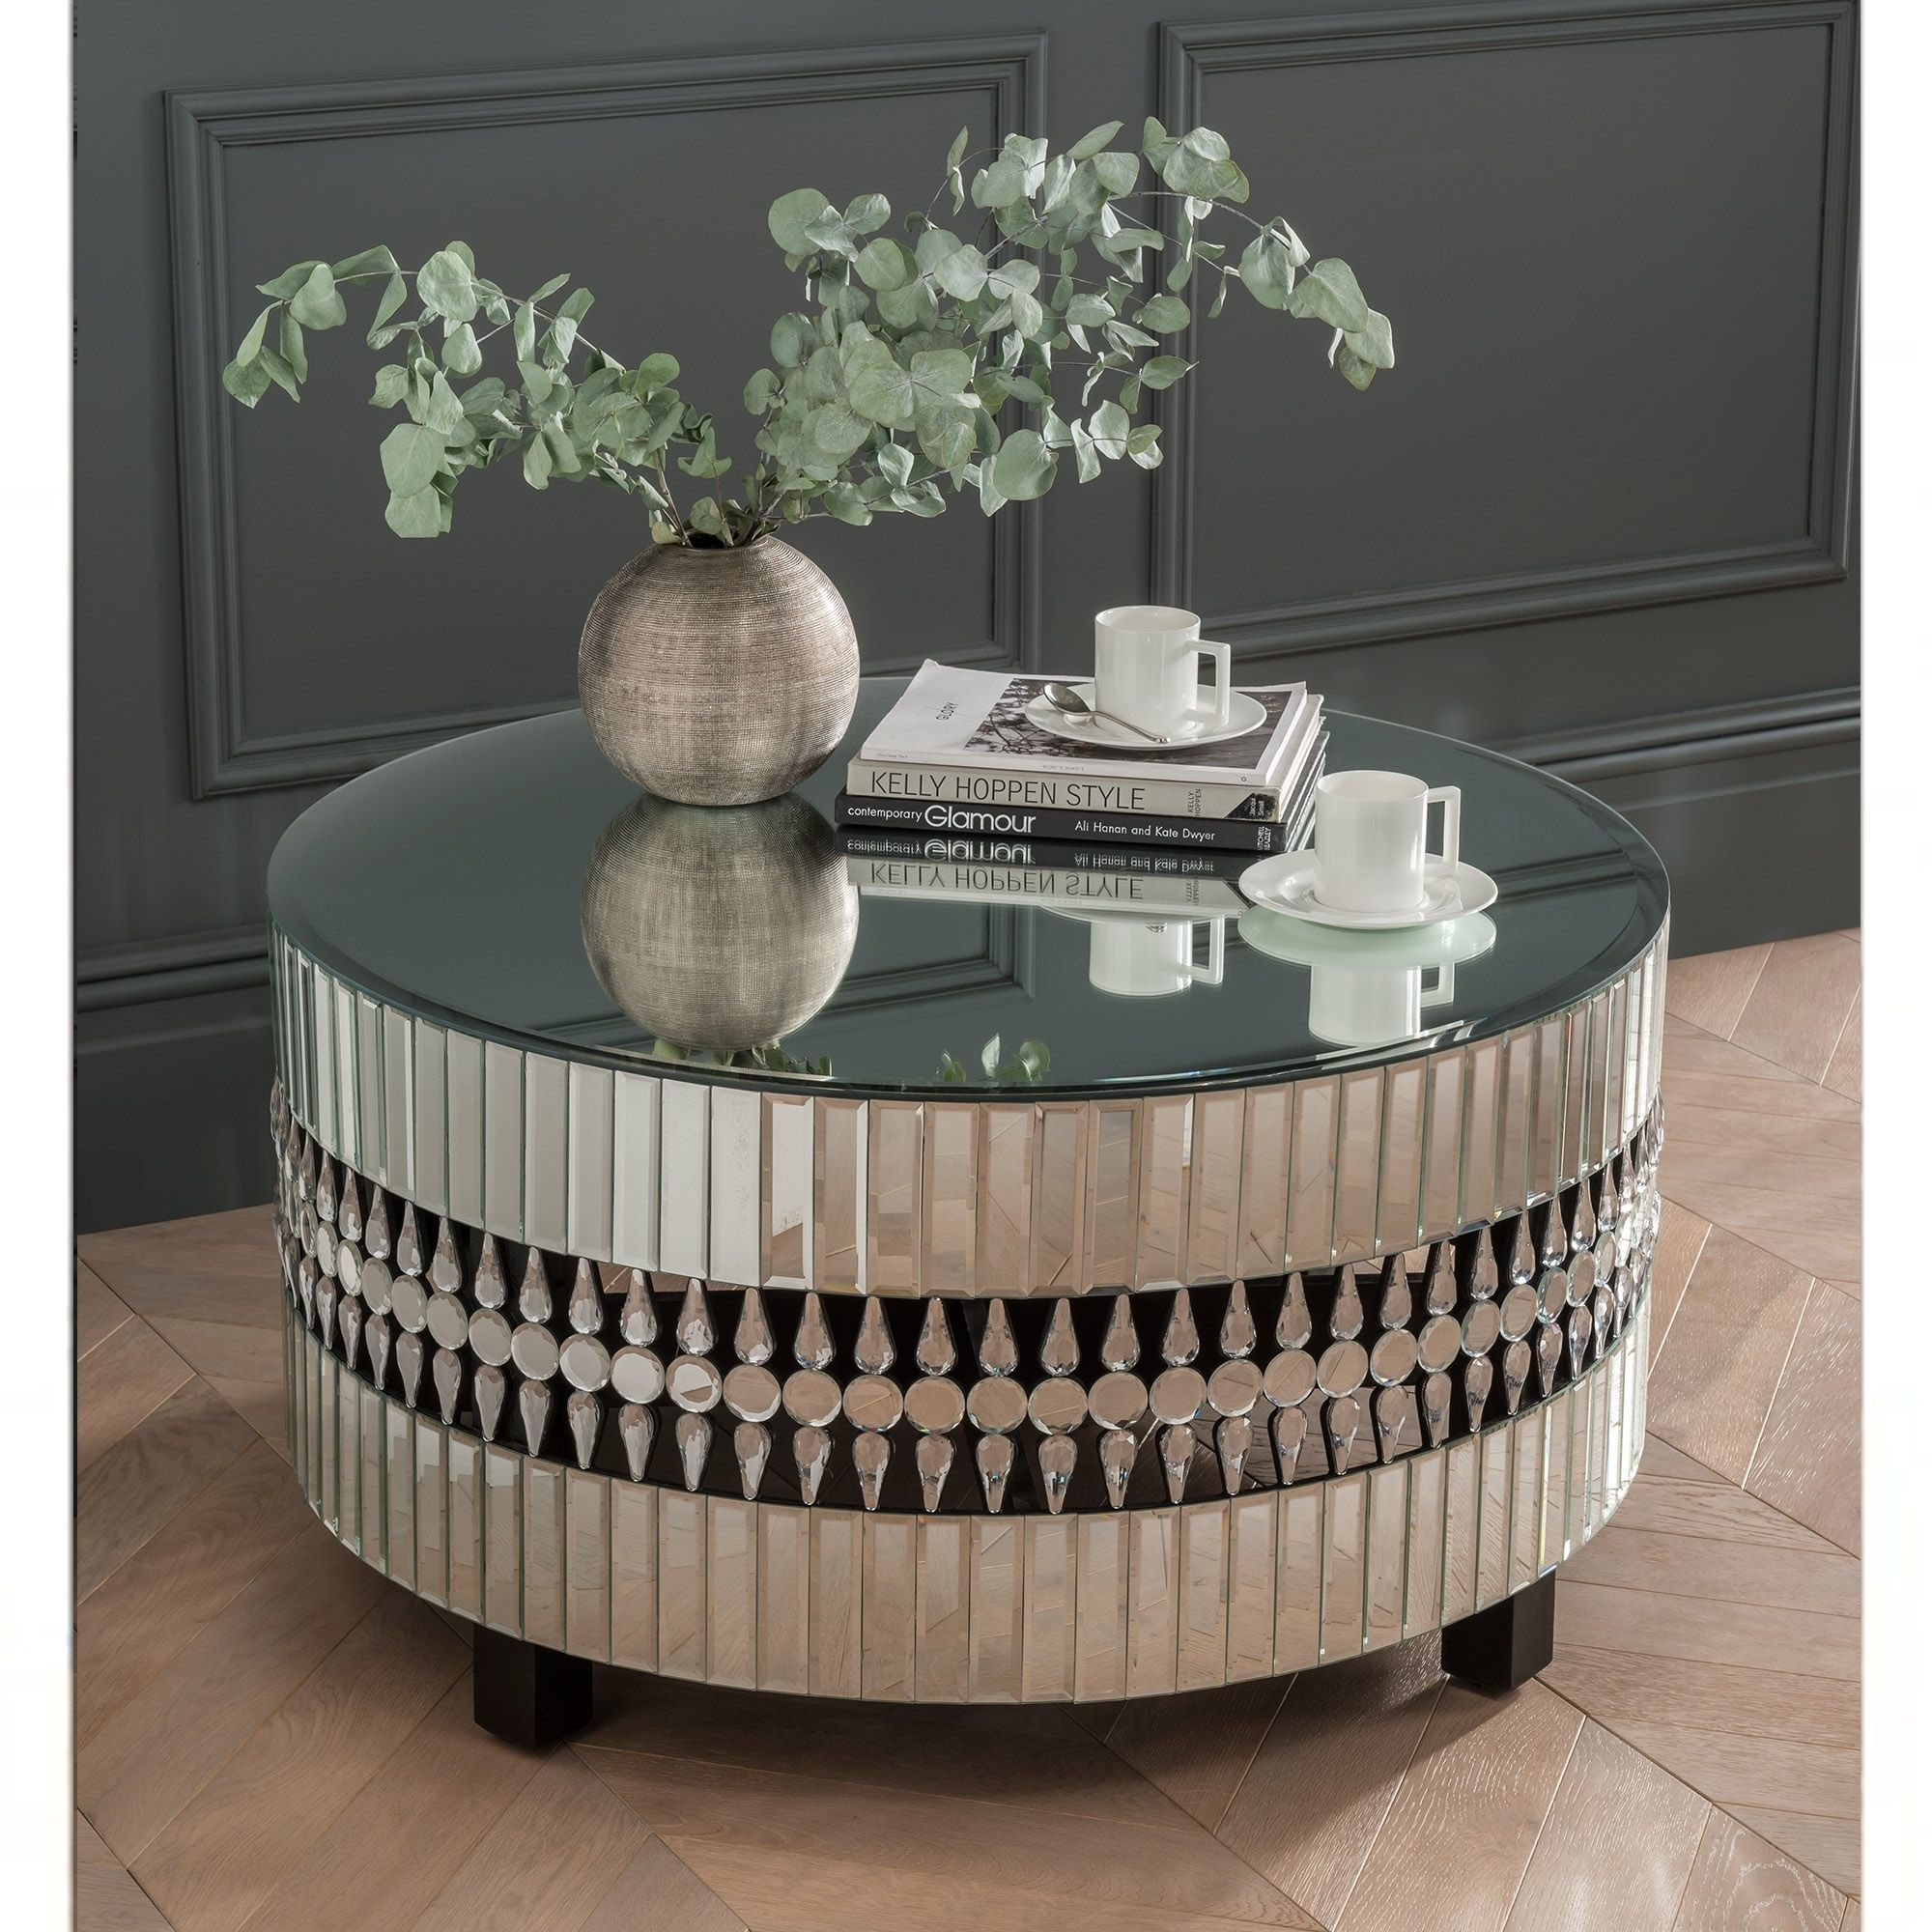 Crystal Mirrored Coffee Table Mirrored Coffee Tables Coffee Table Mirrored Sideboard [ jpg ]